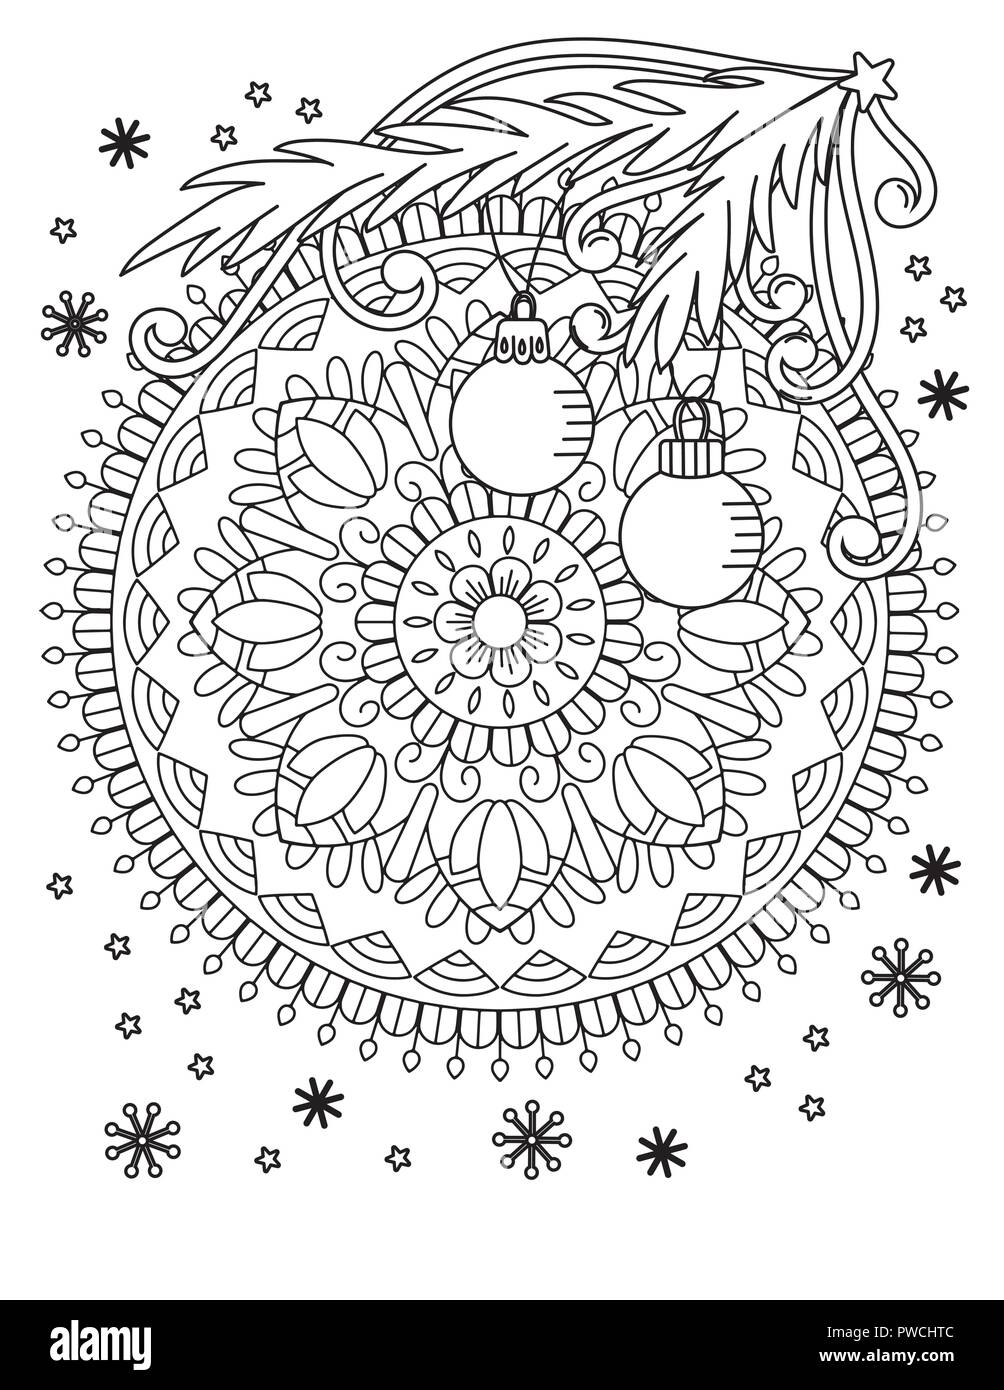 Christmas mandala coloring page. Adult coloring book ...